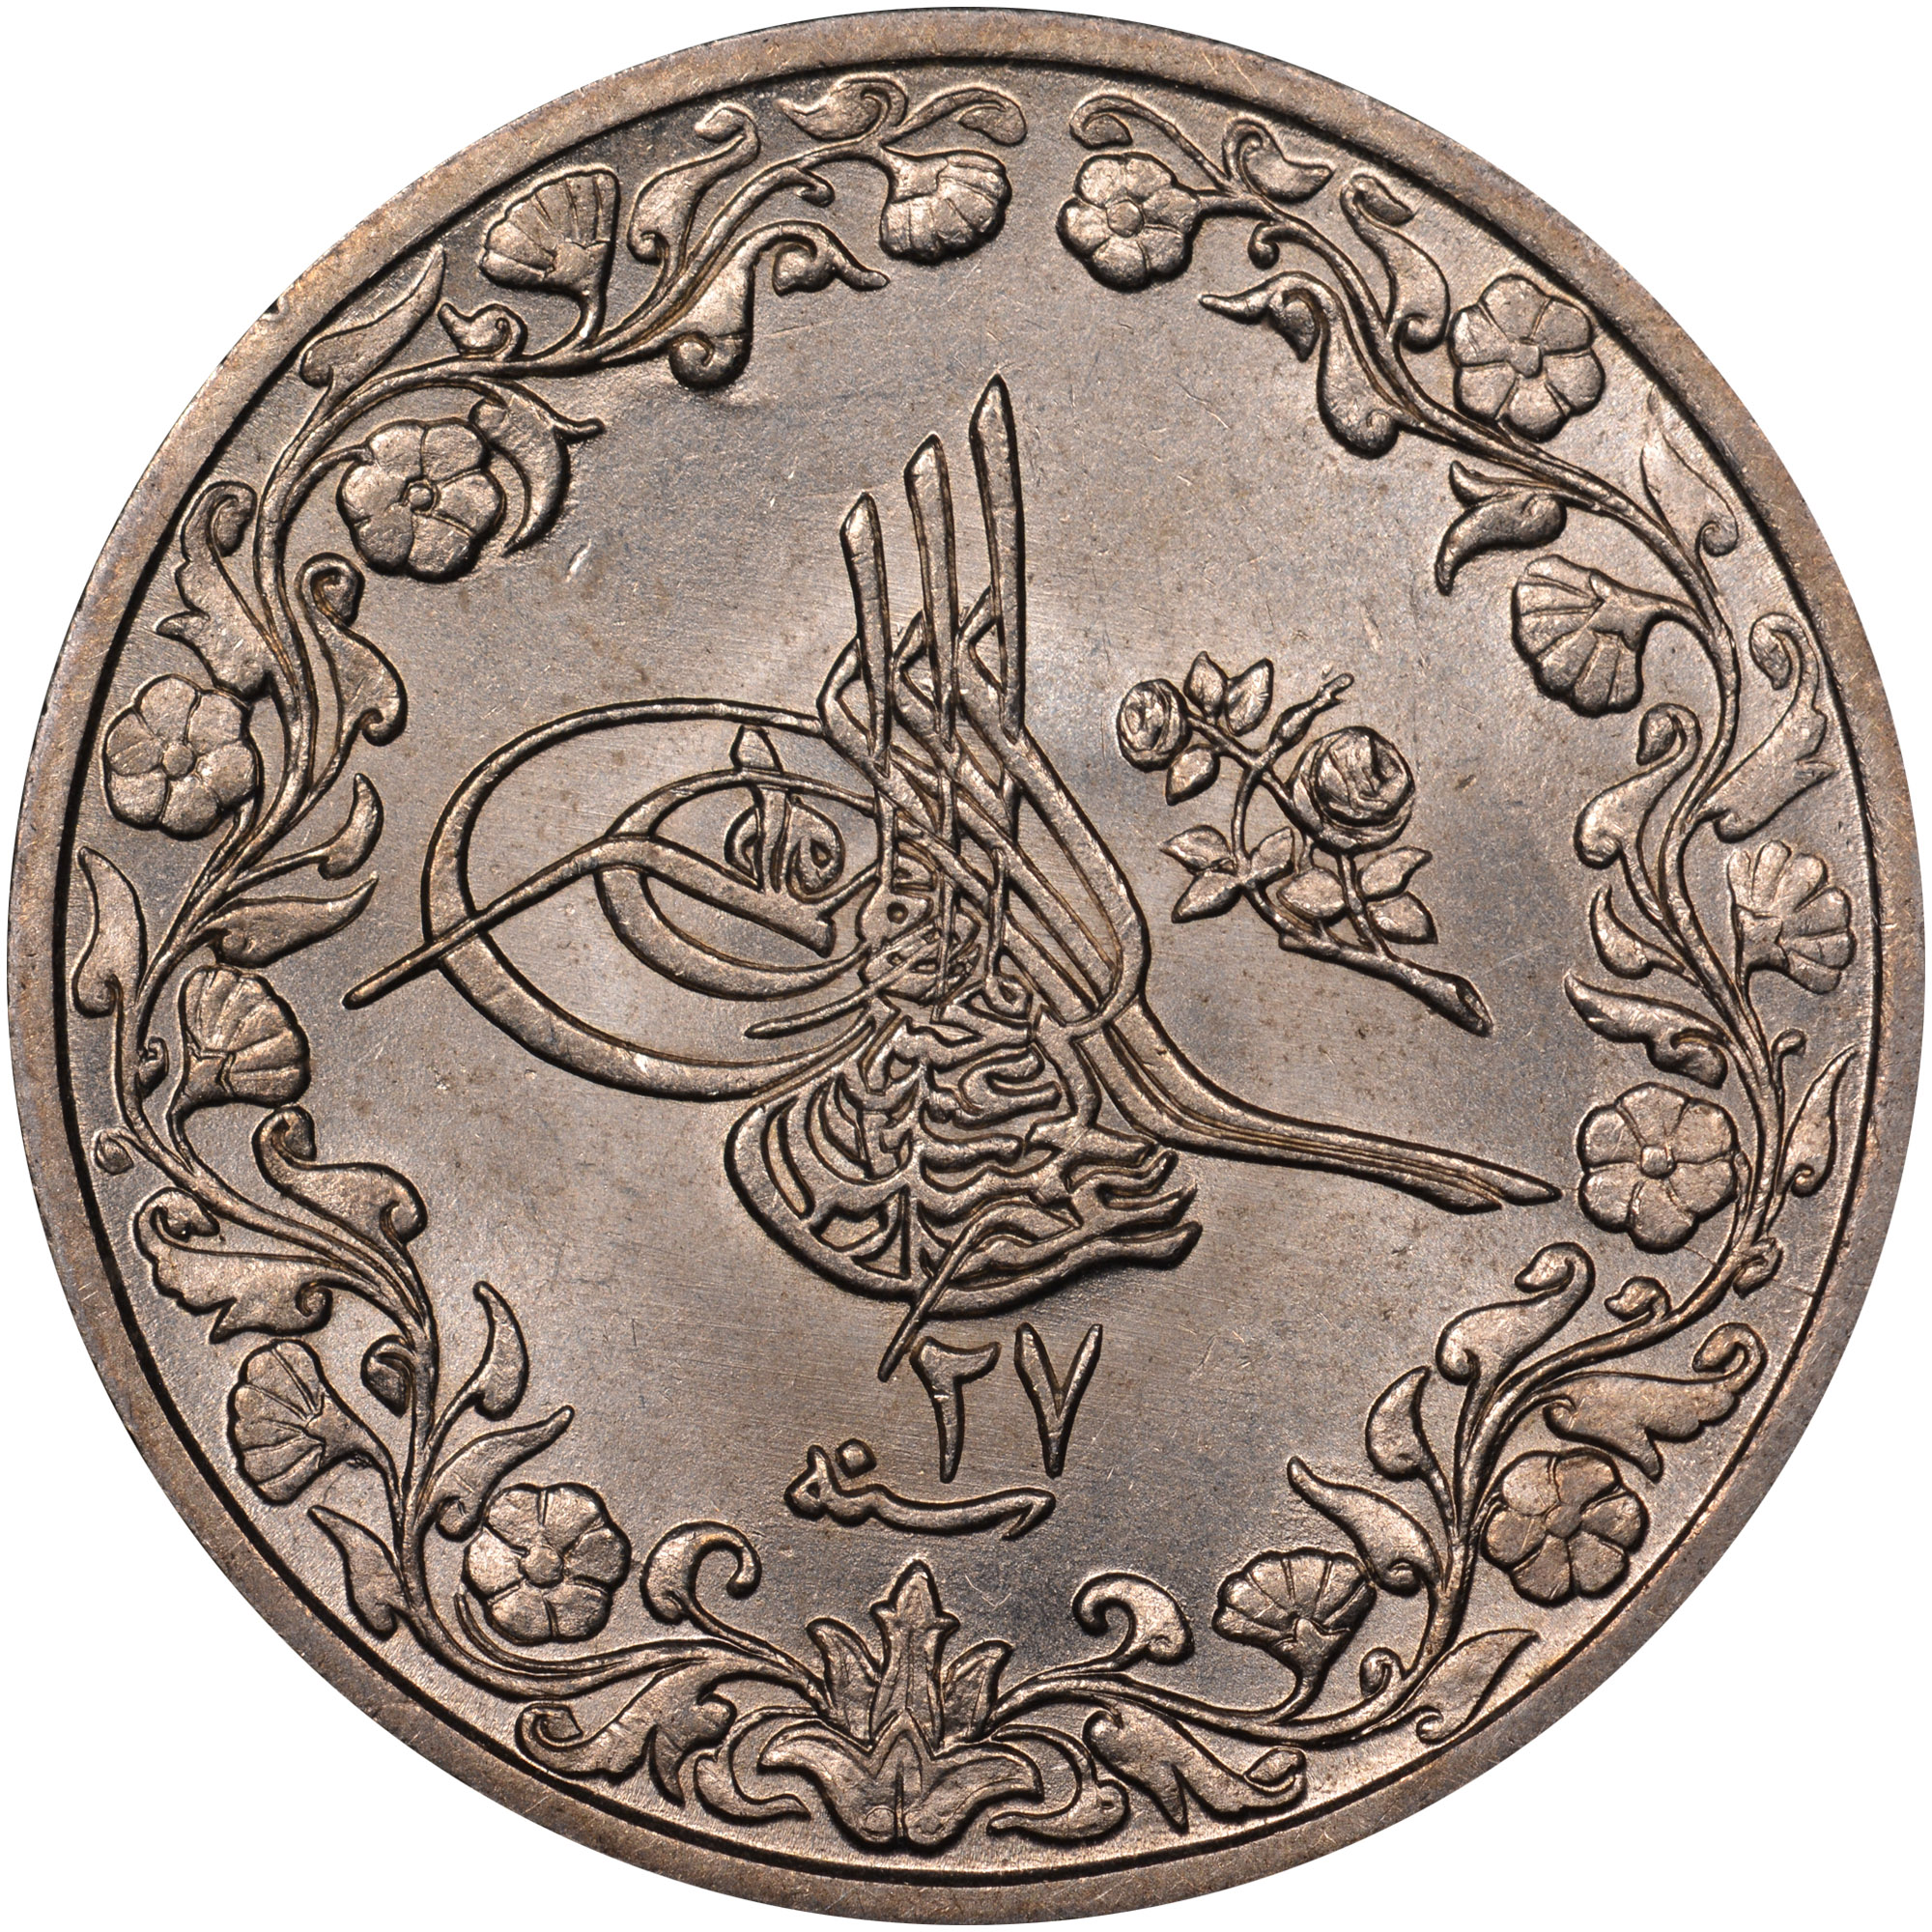 Egypt 5/10 Qirsh obverse